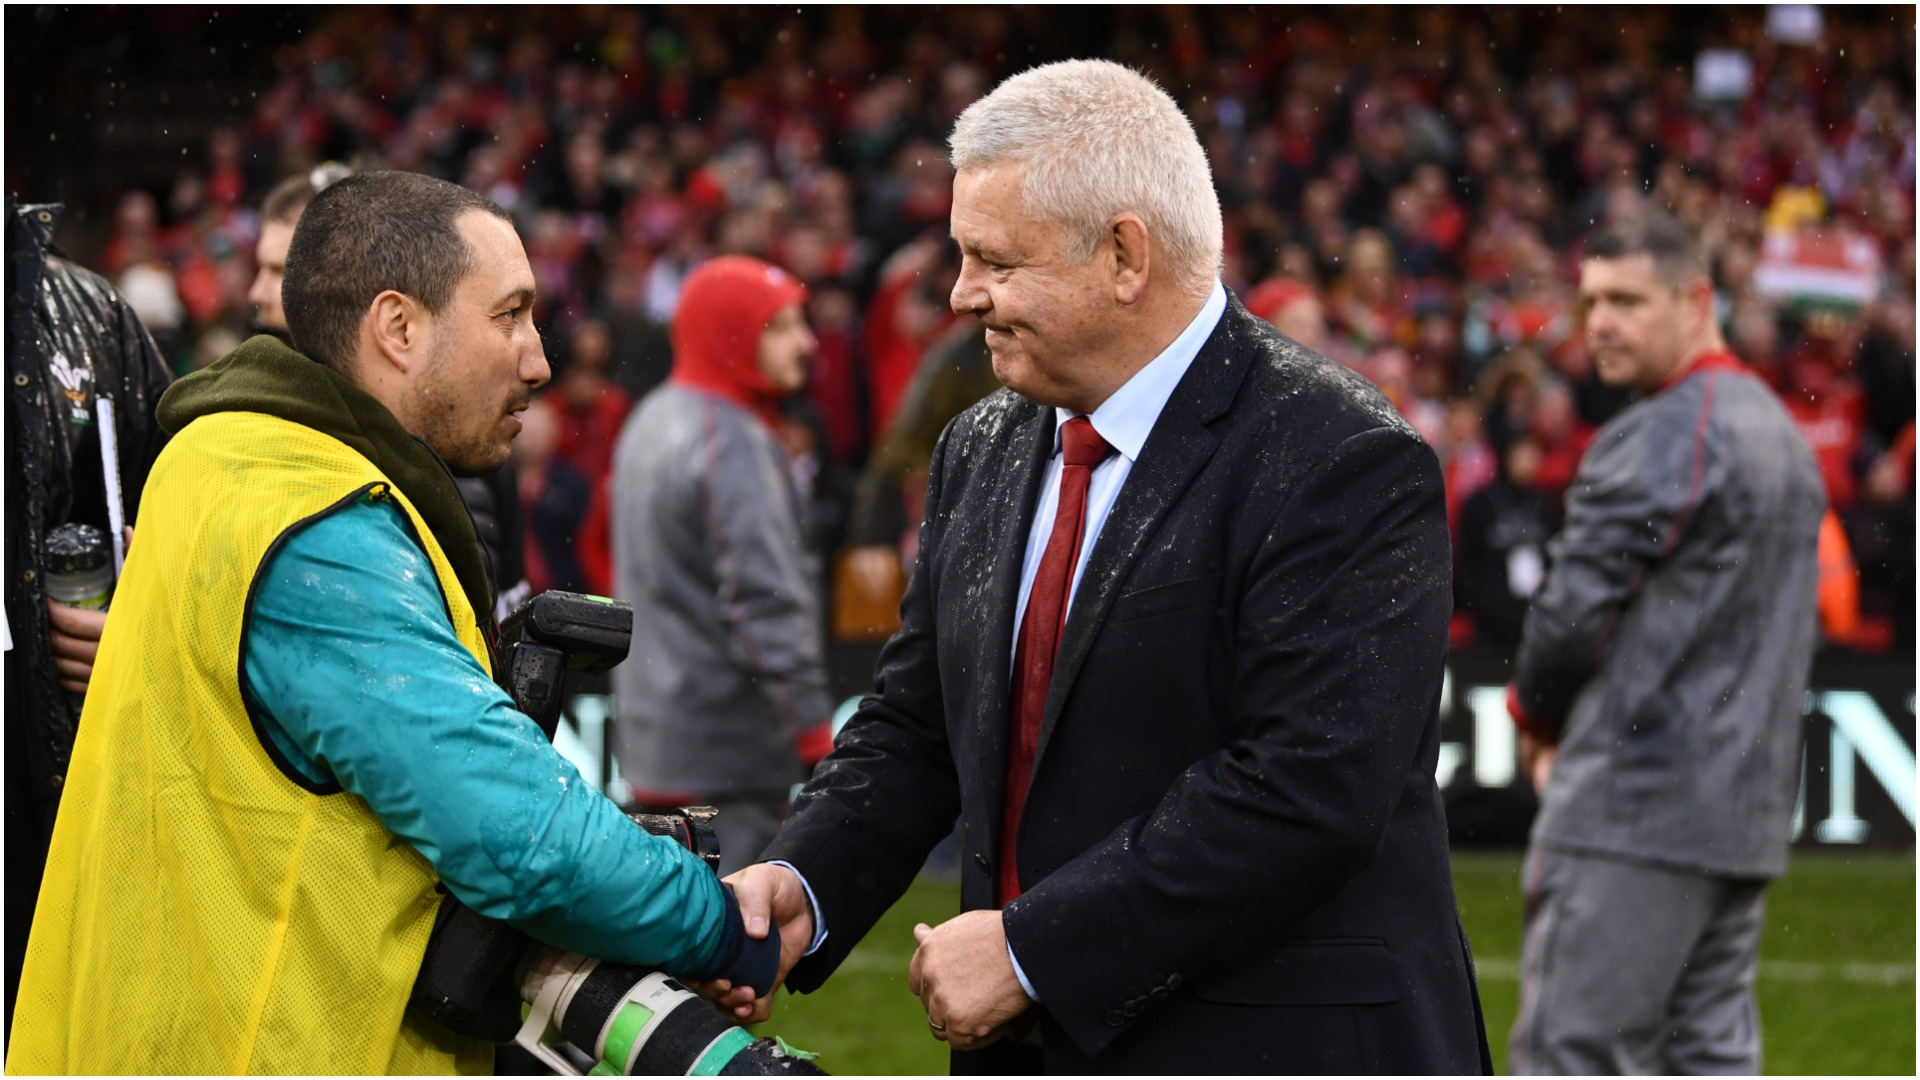 Gatland urges Wales to continue hard work after his departure